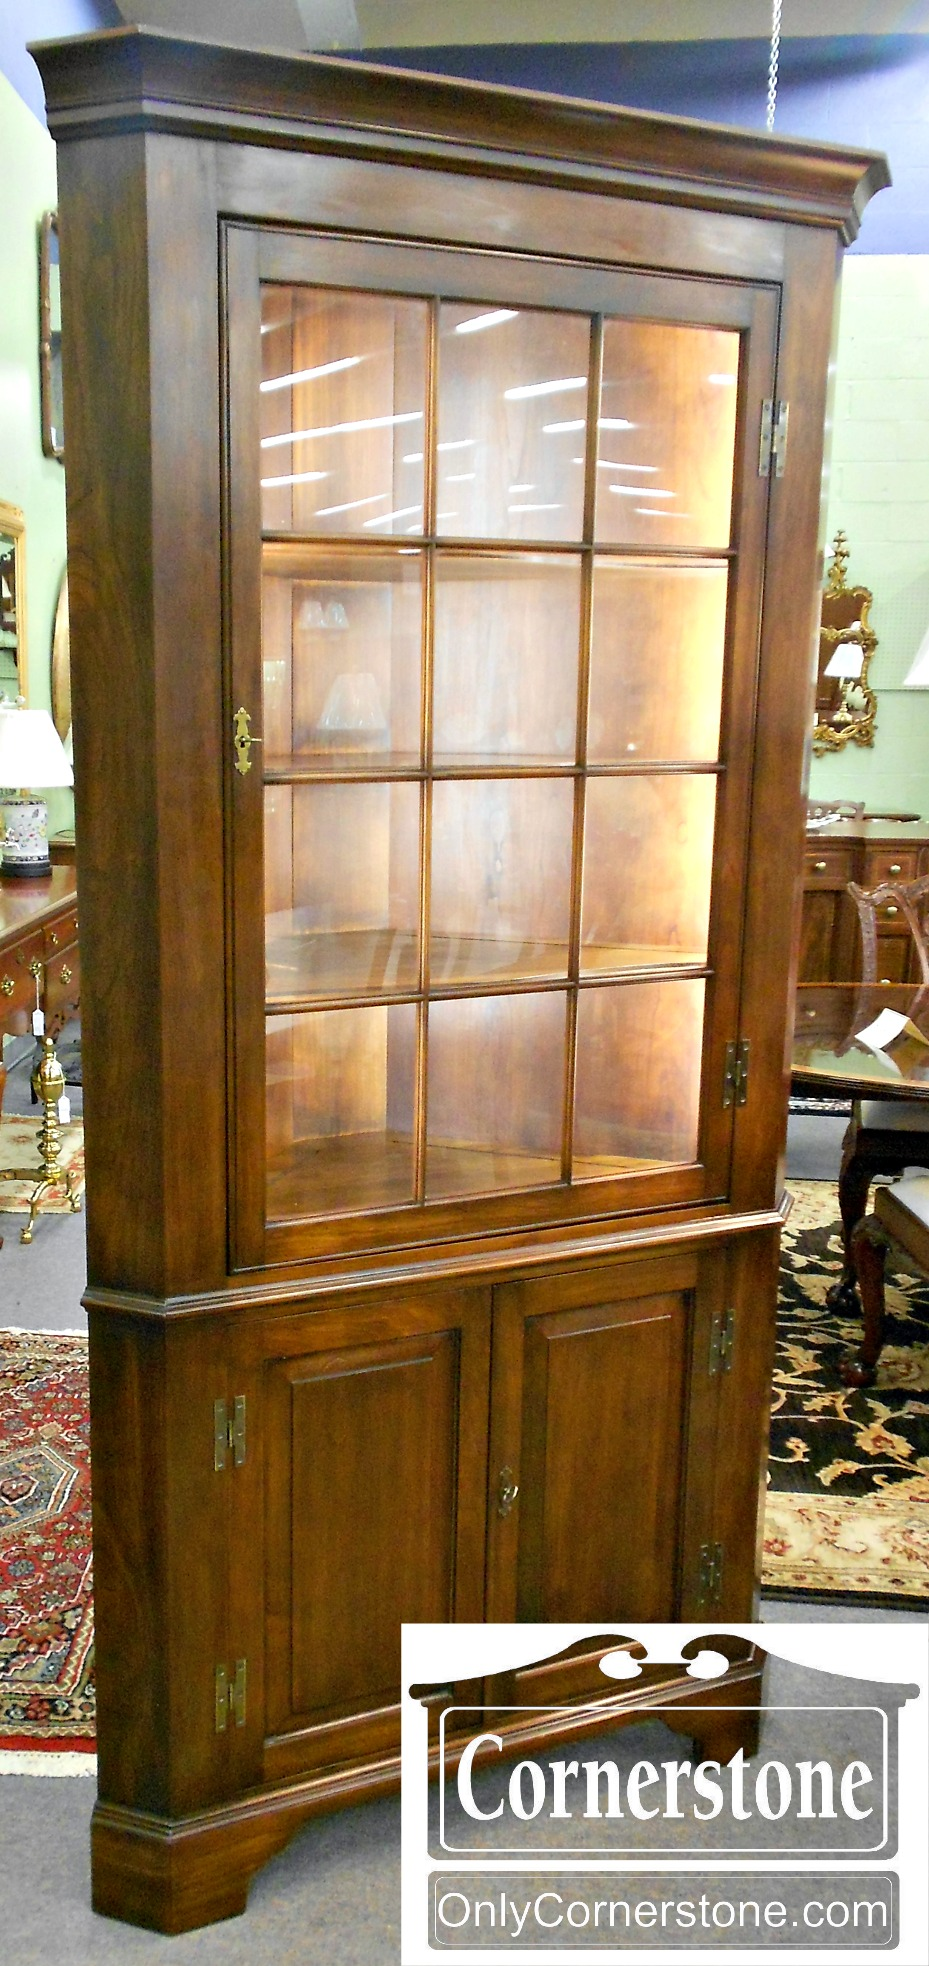 5670-667 Henkel Harris Solid Cherry 12 Pane Corner Cabinet in Finish #35